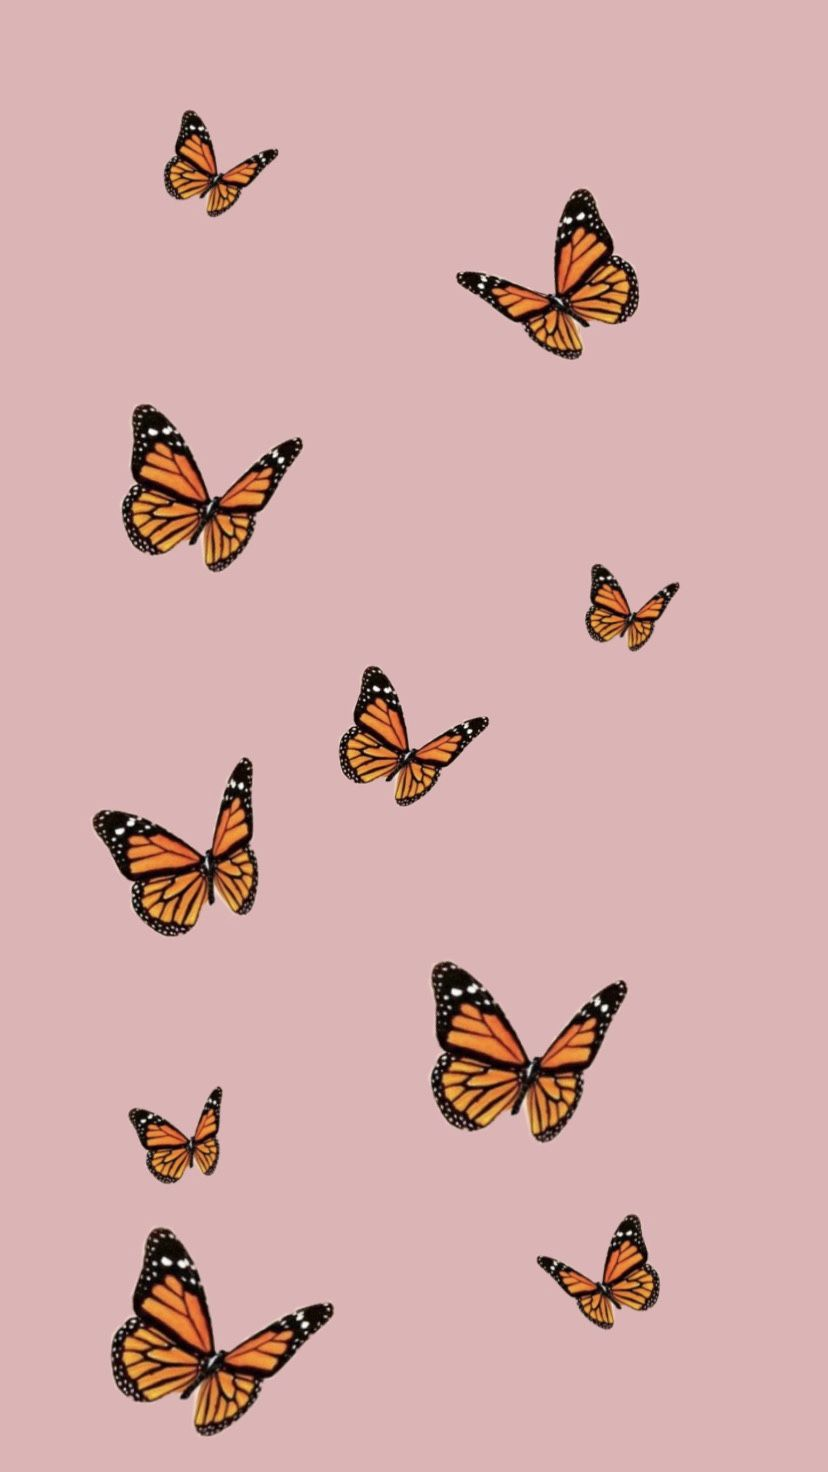 Pin By Cynthia G On Farts Iphone Background Wallpaper Butterfly Wallpaper Aesthetic Iphone Wallpaper